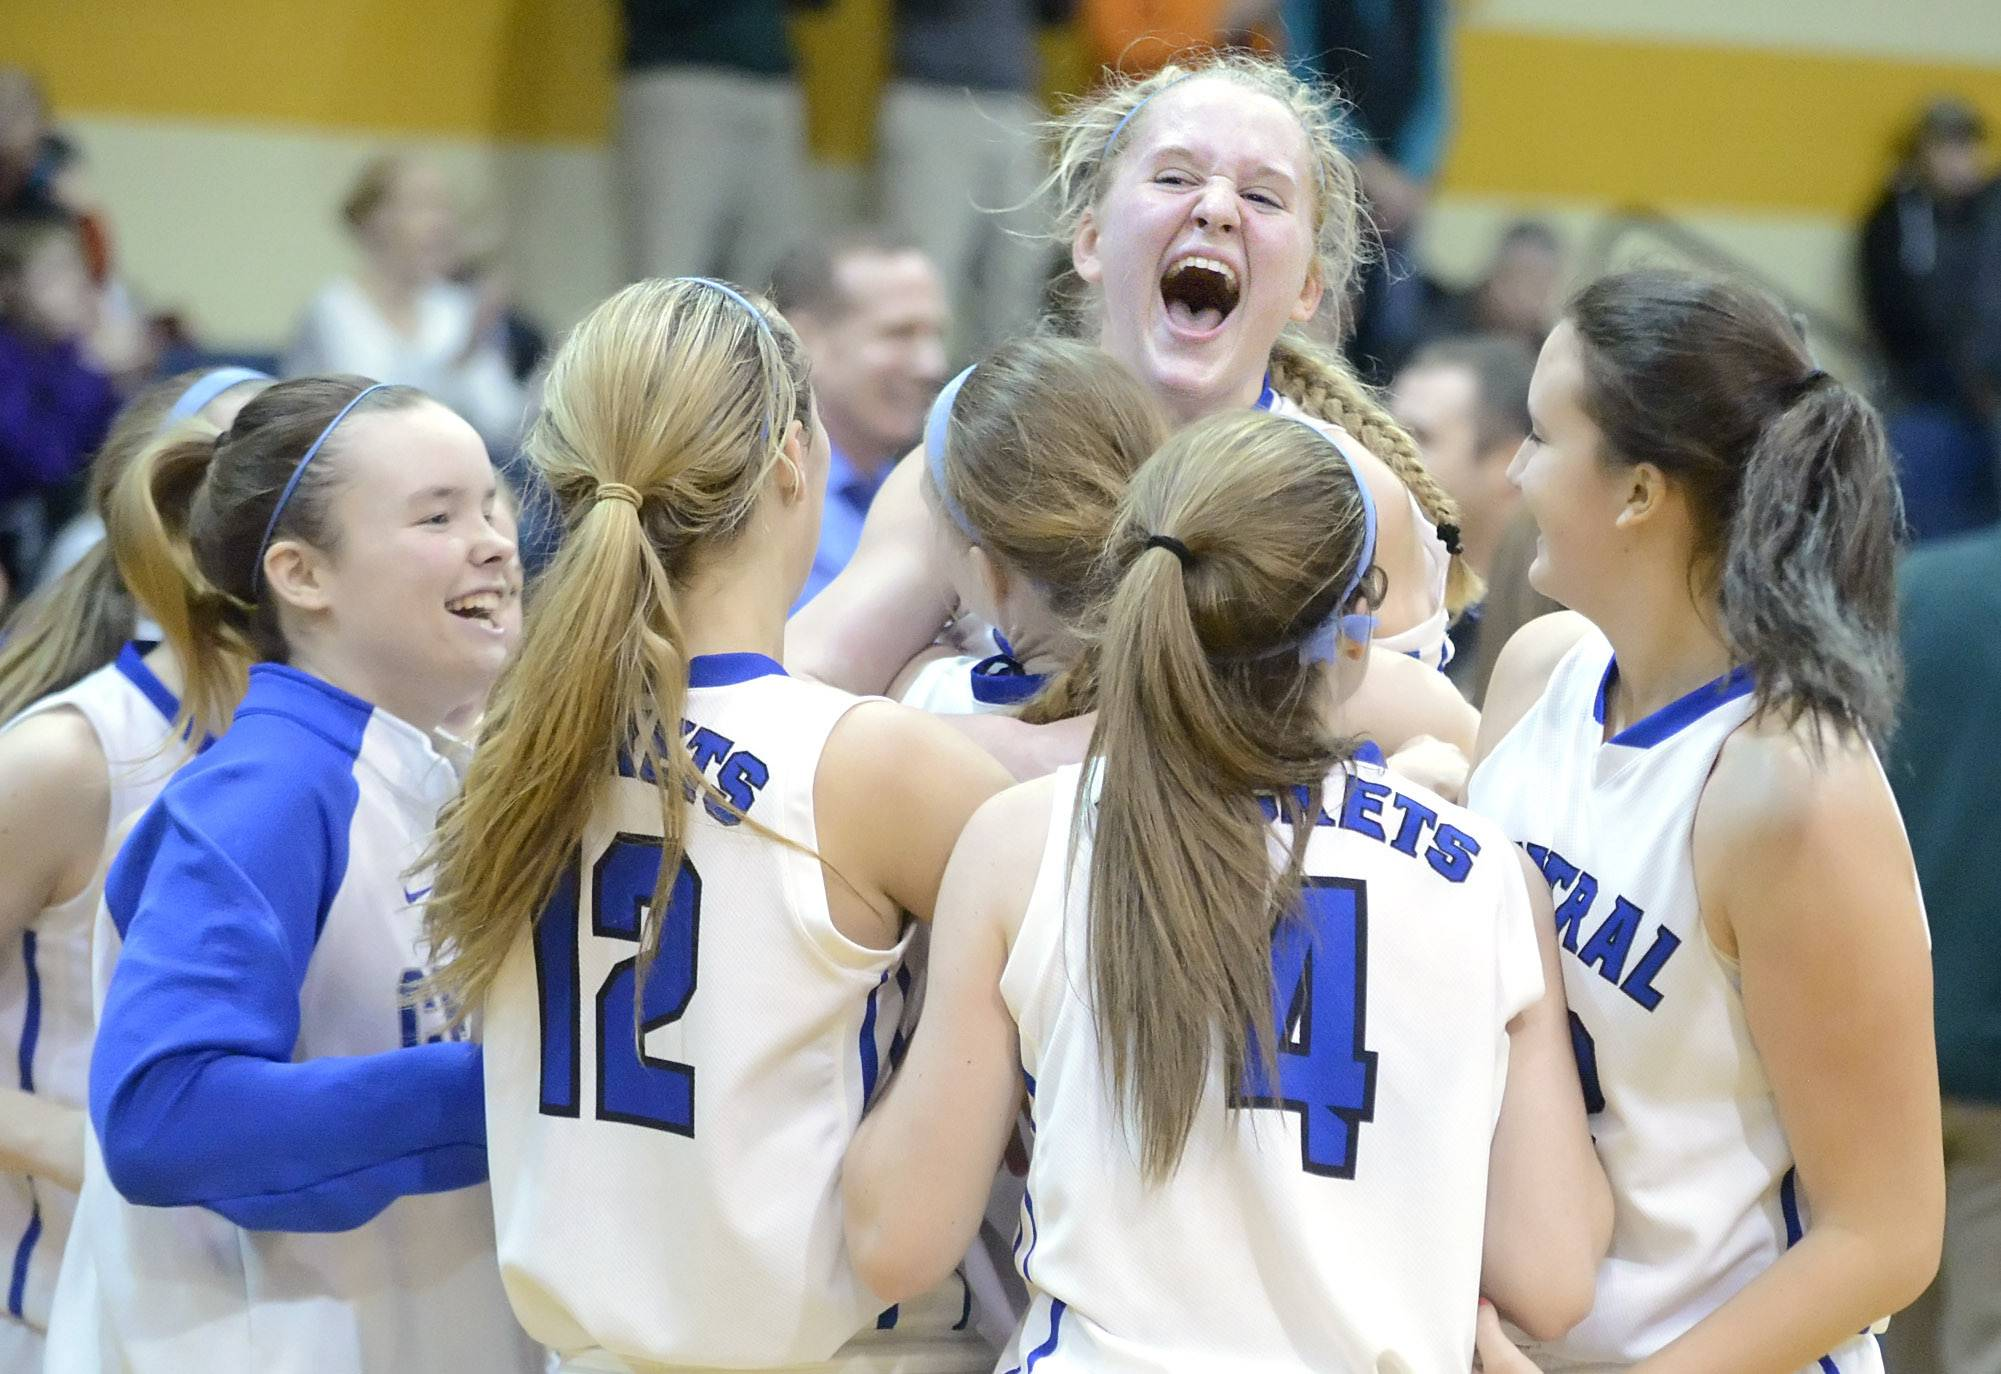 Burlington Central's Samantha Pryor screams as she leaps into the arms of teammates after their win over St. Edward in the Class 3A regional championship game on Saturday, February 22.